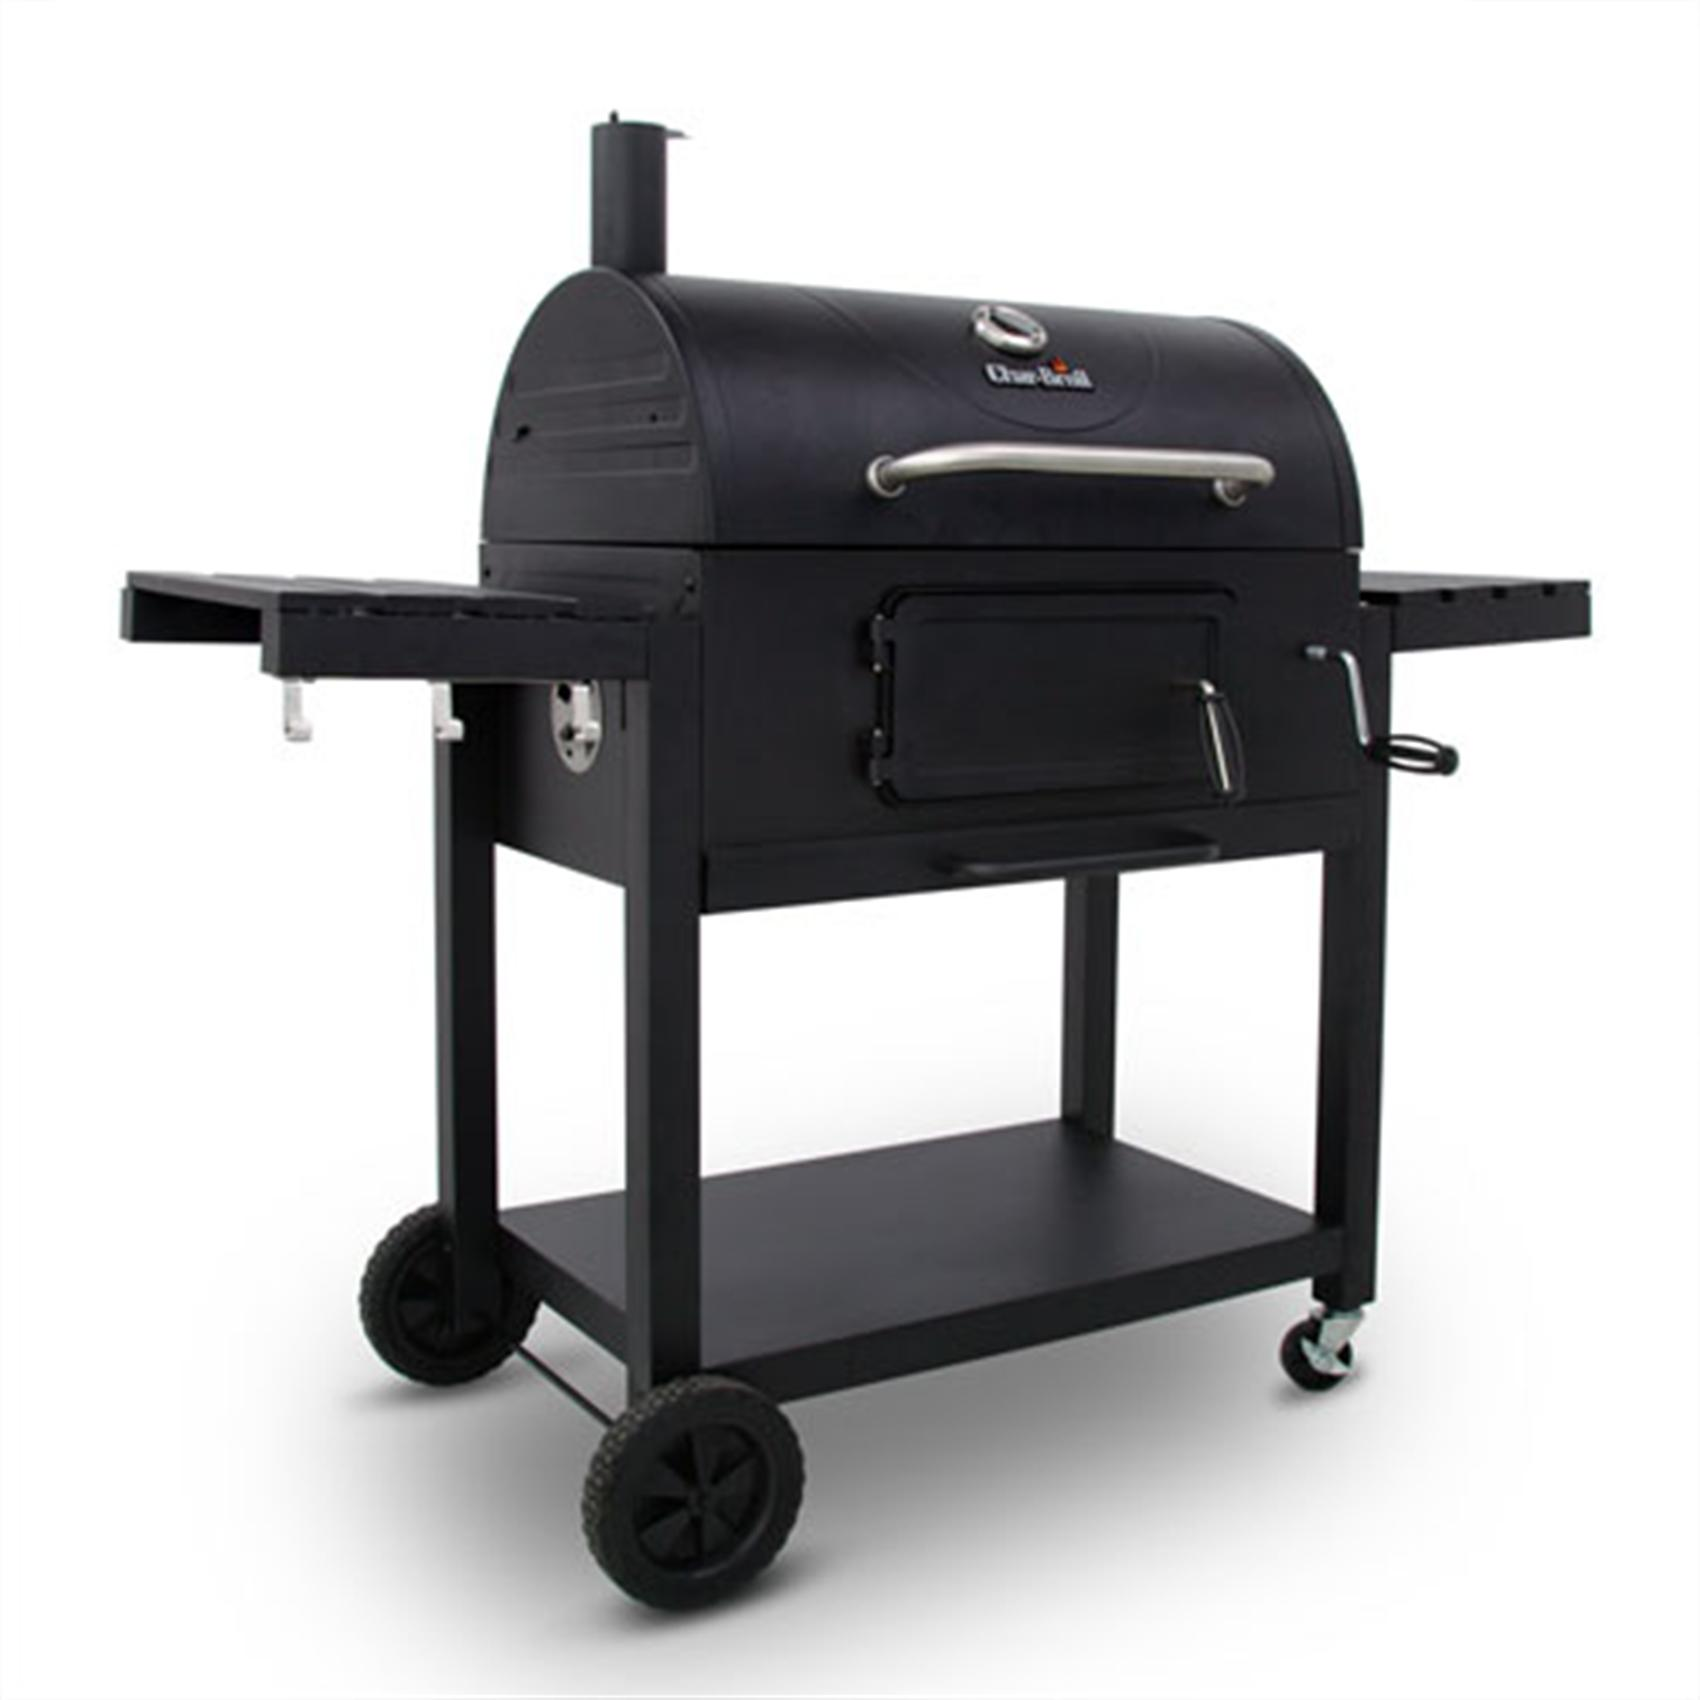 Help for CB 30-Inch Charcoal Grill | CB 30-Inch Charcoal Grill | Char-Broil